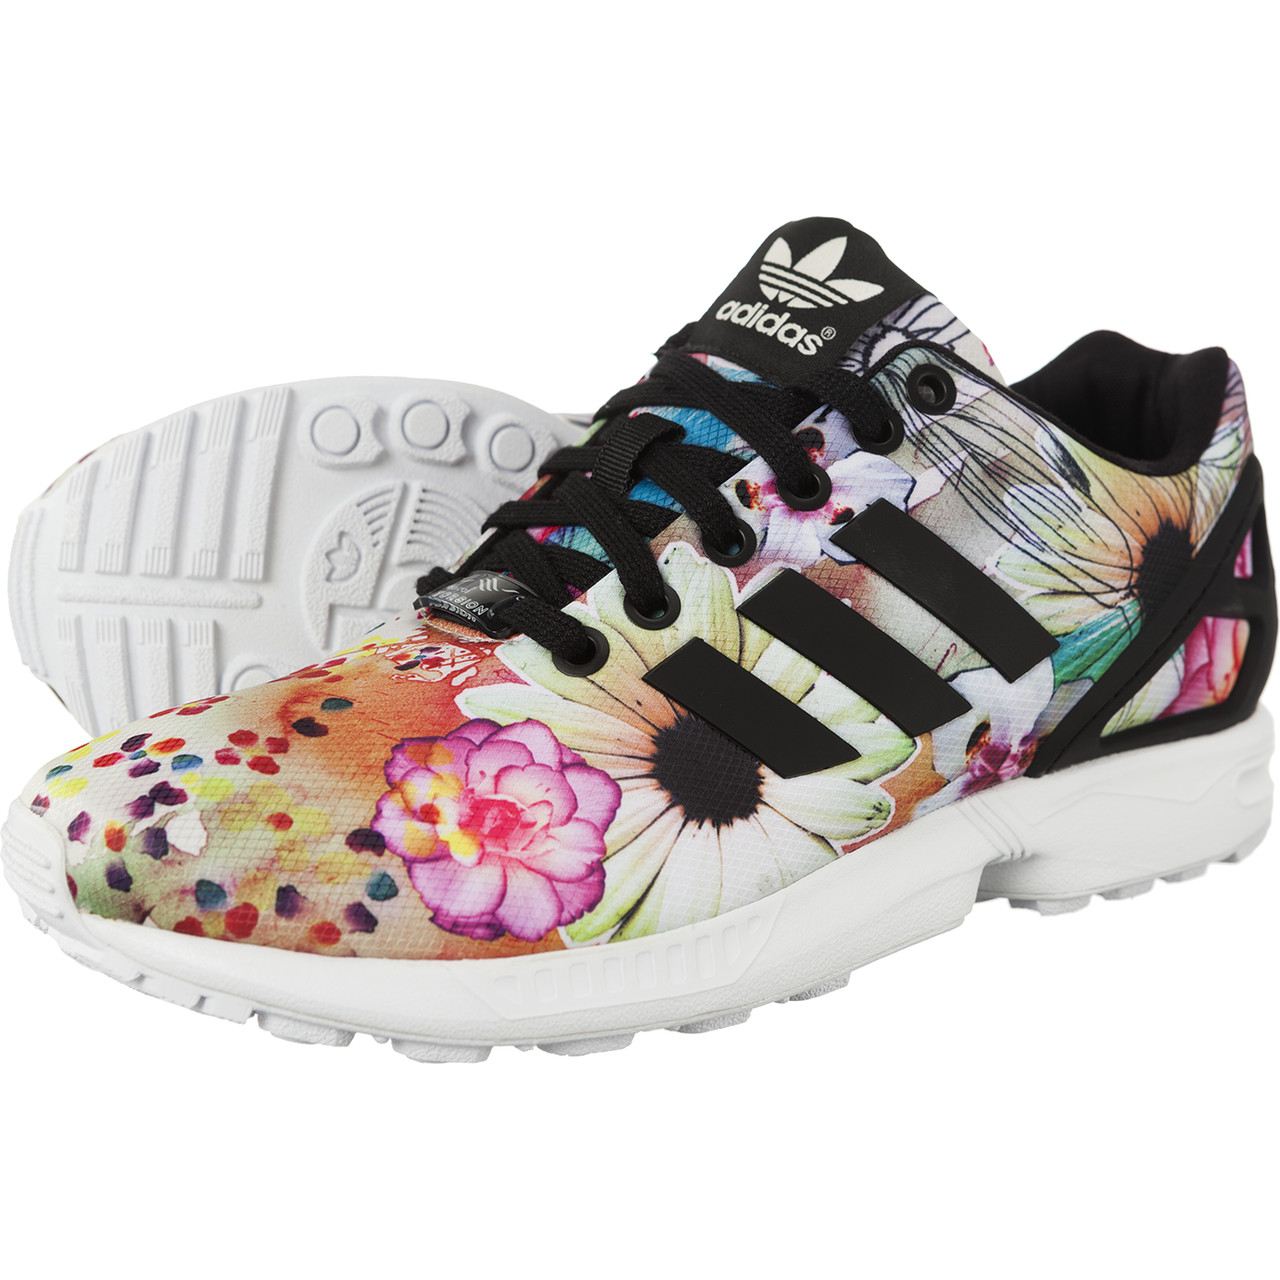 a2ef4b9a0975a Adidas Originals ZX Flux Womens Floral Trainers The Farm Company in ...